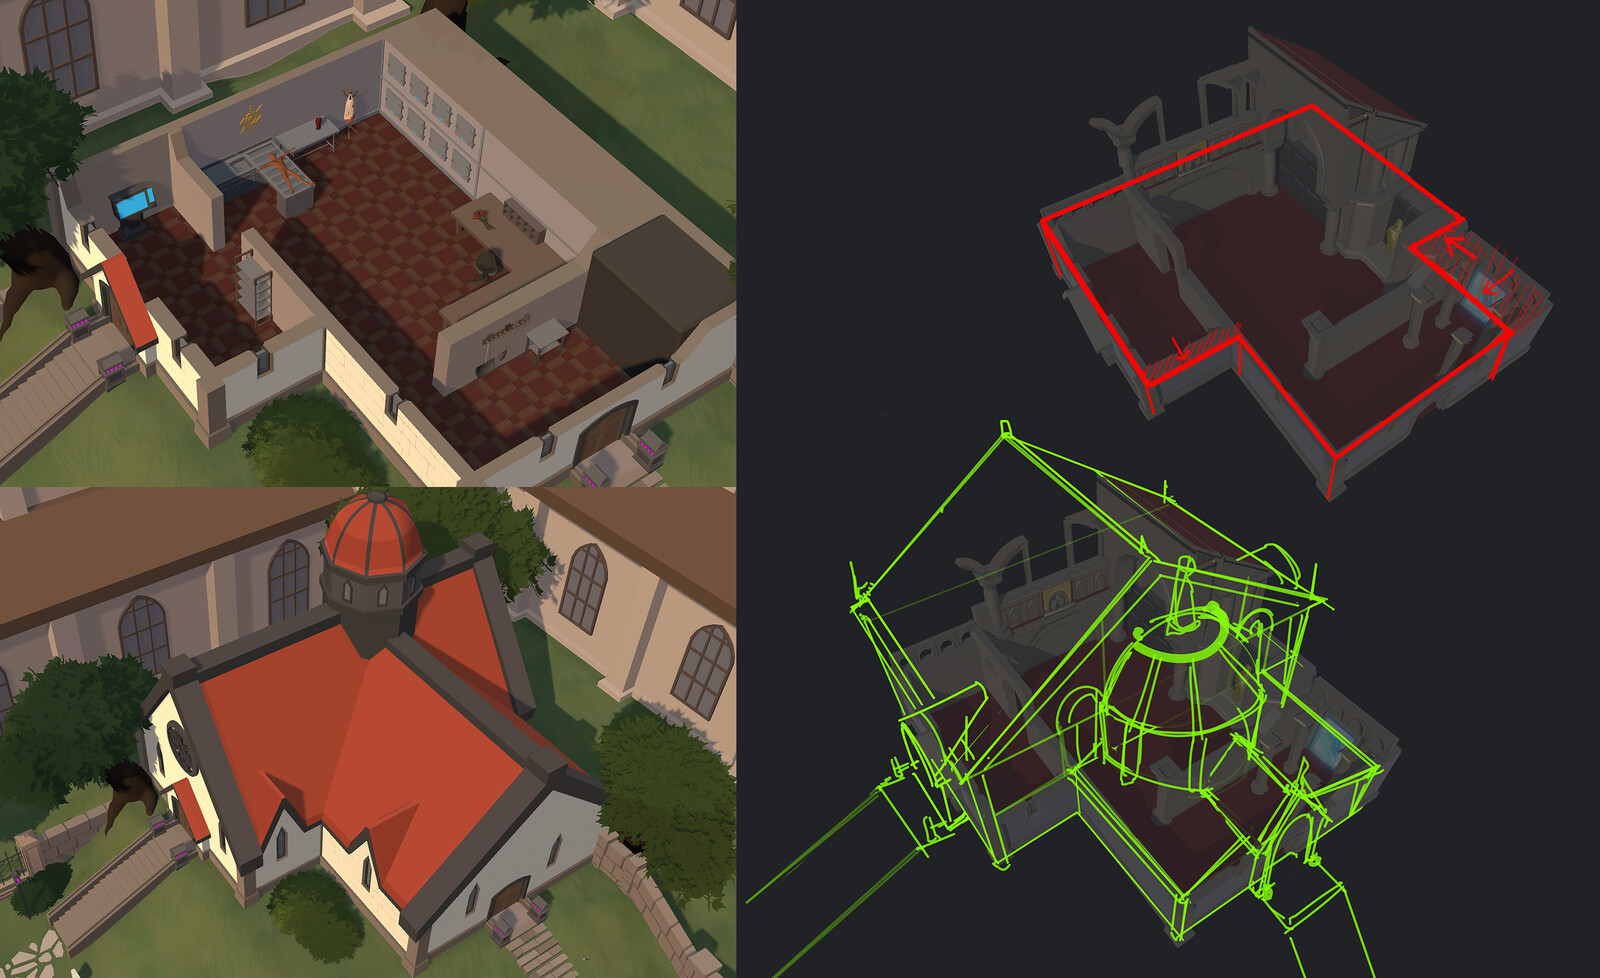 Redesigning original geo without altering critical paths and navmesh/pathfinding